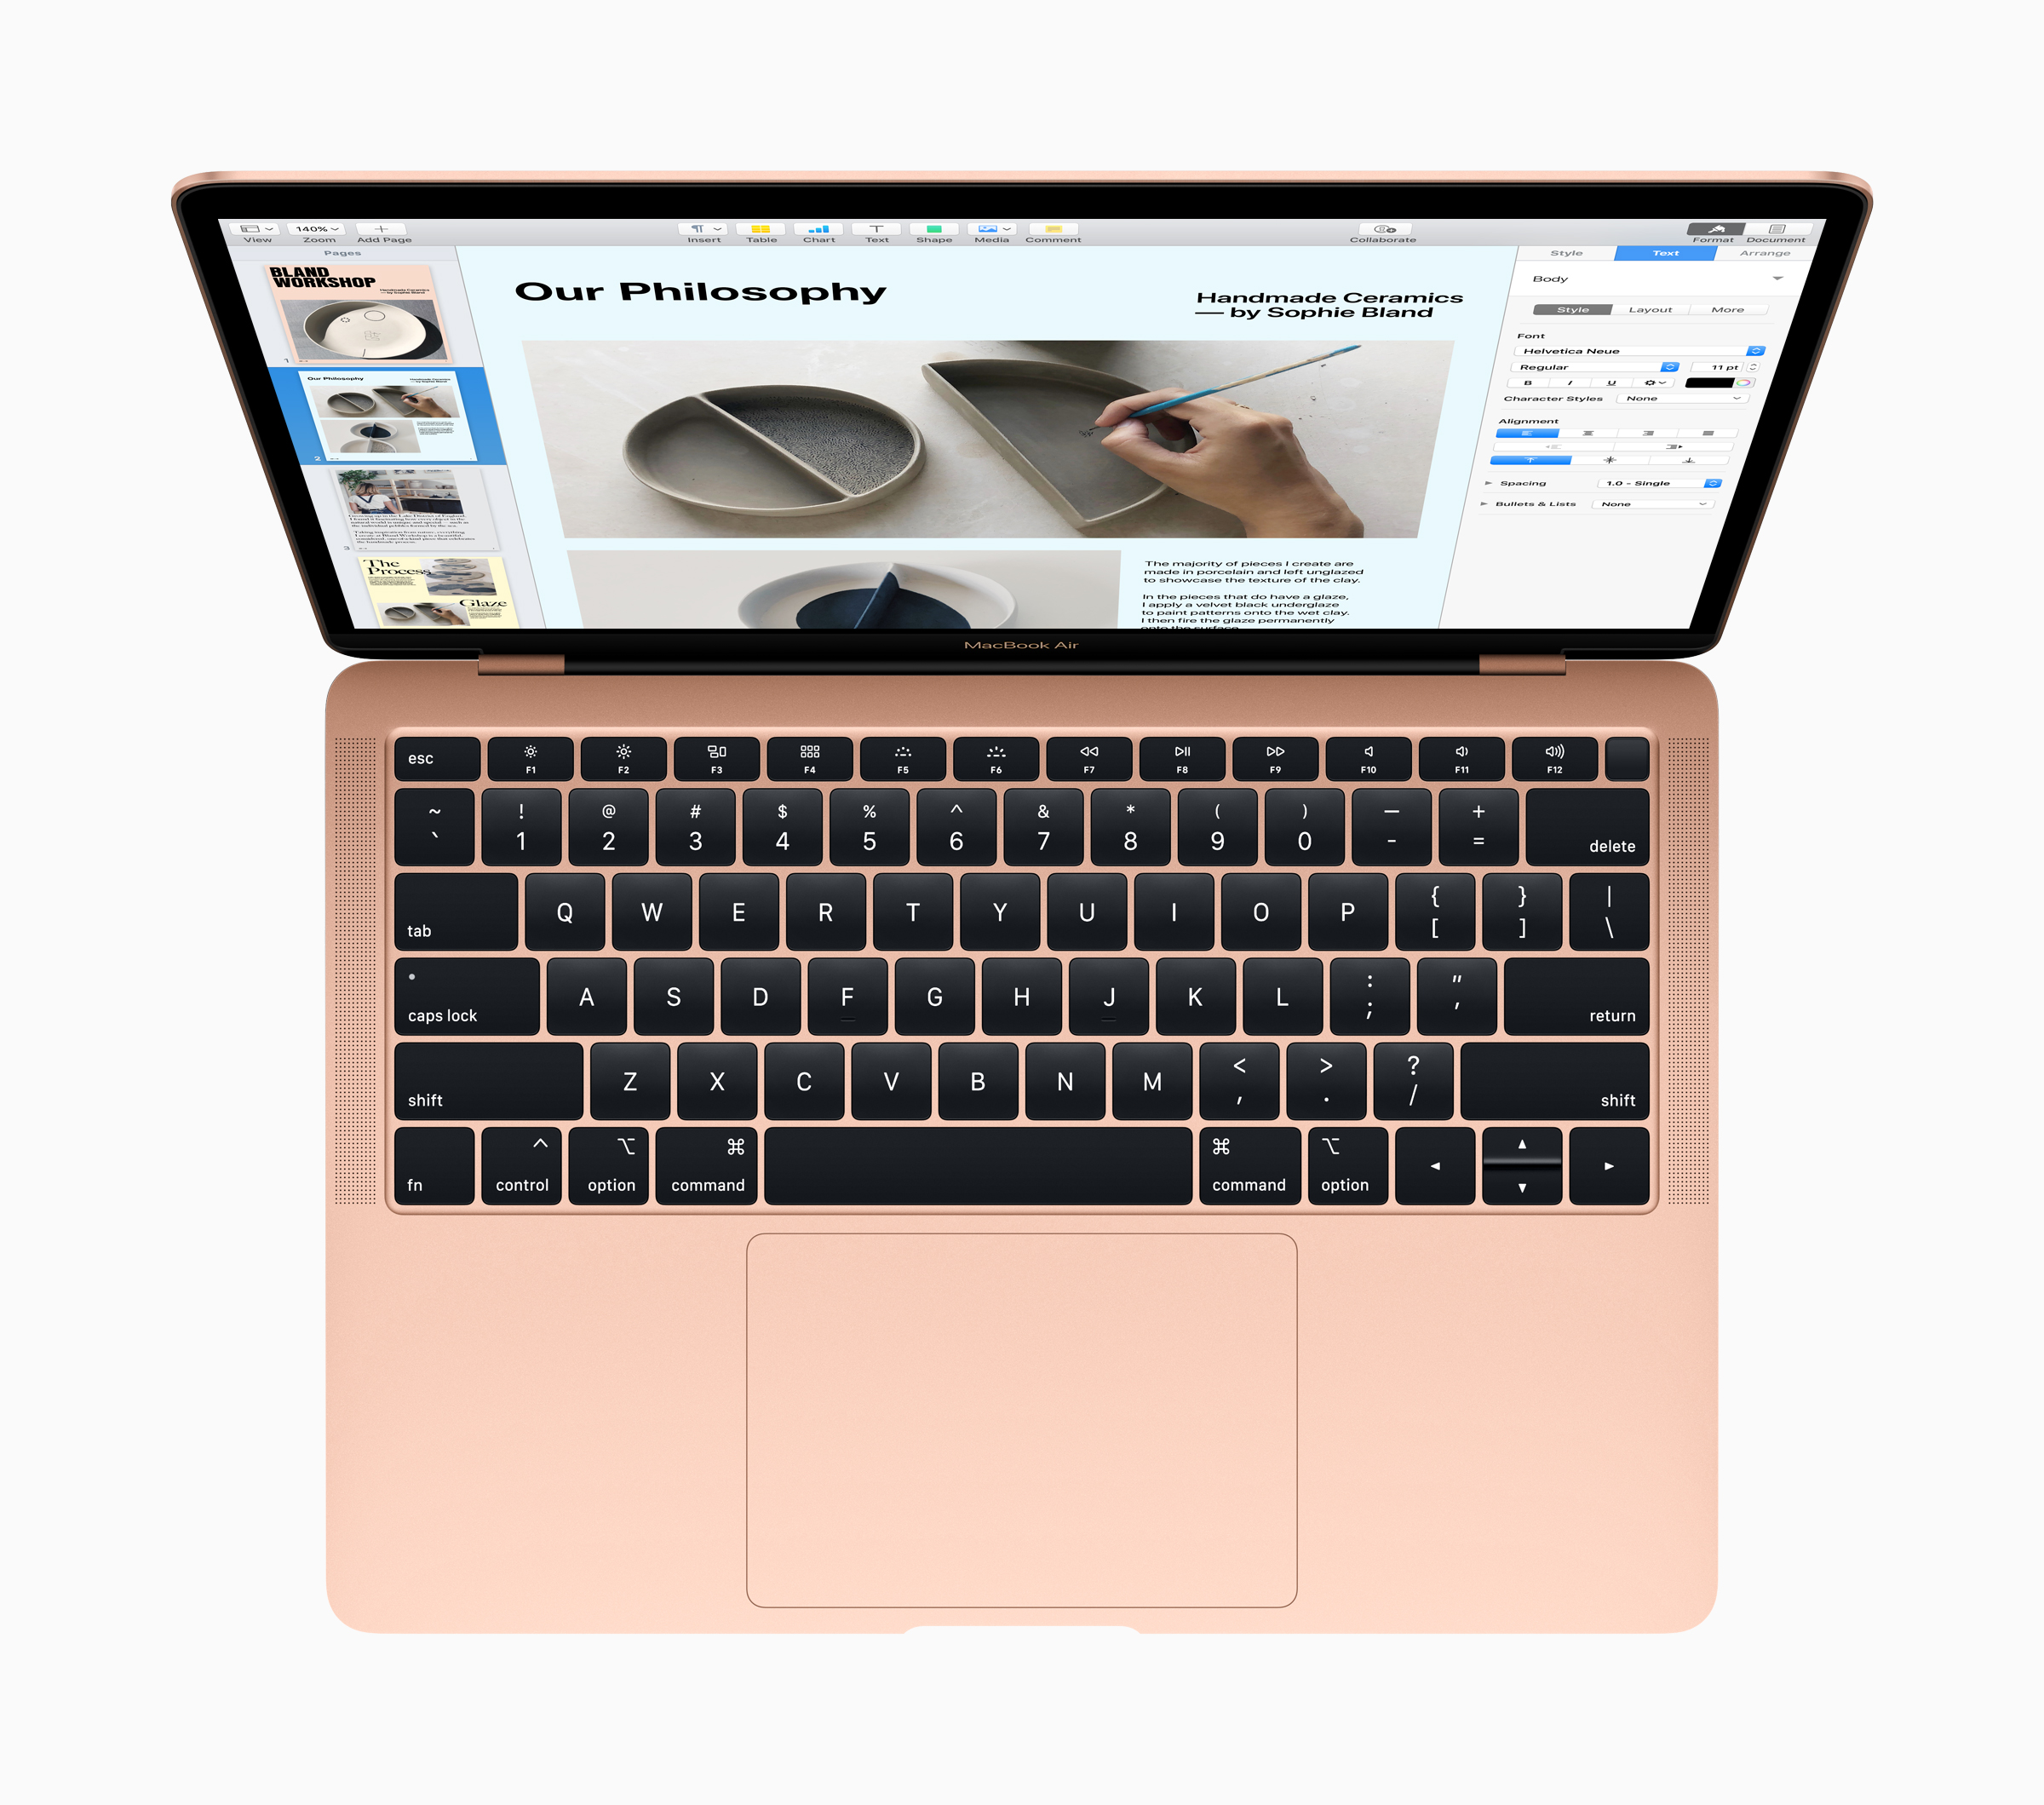 Image showing Apple MacBook Air 2018 in Gold Color